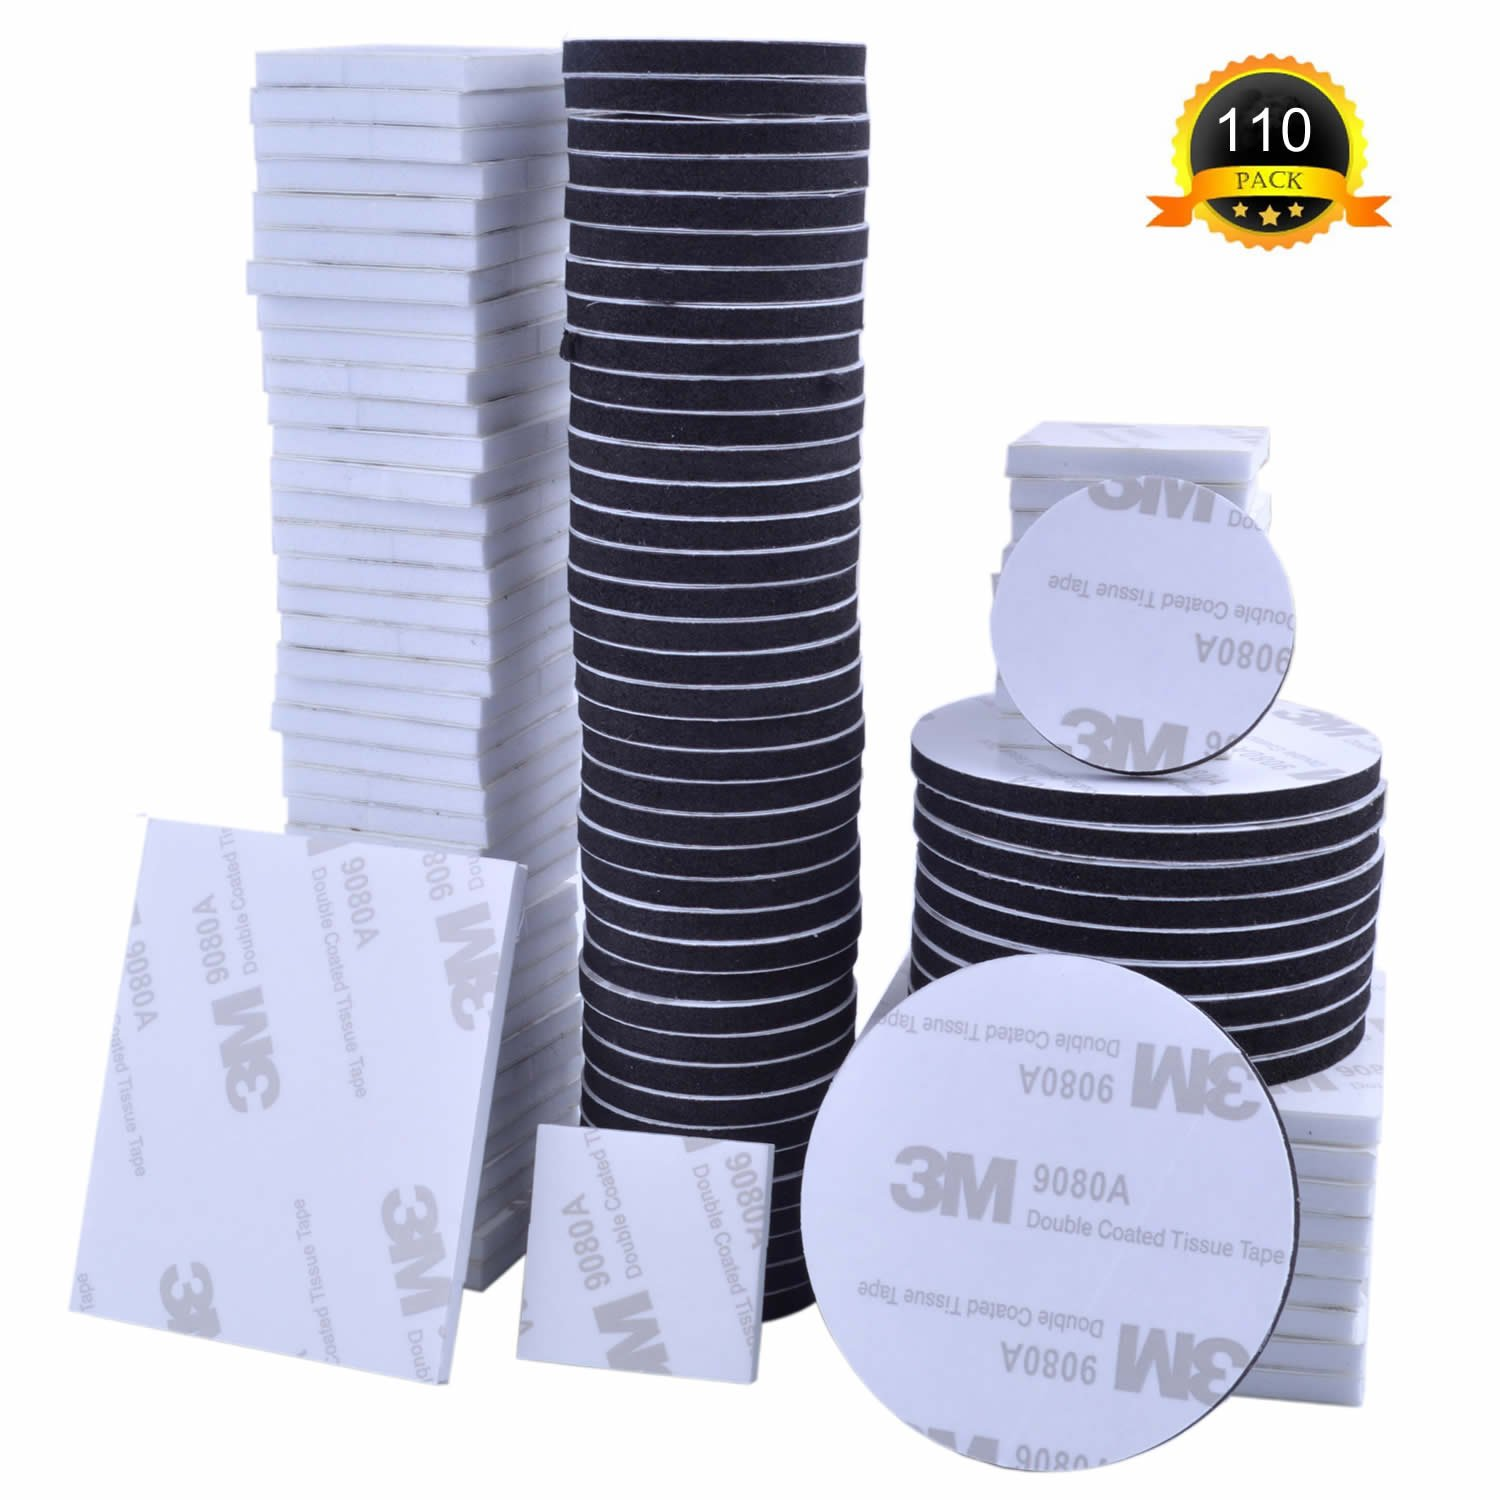 Double Sided Sticky Pads, 110 Pcs White Black Rectangle Square Round Double Sided Foam Sticky Pads, (4 Sizes, 25mm, 45 * 55mm, 30mm, 50mm) euhuton